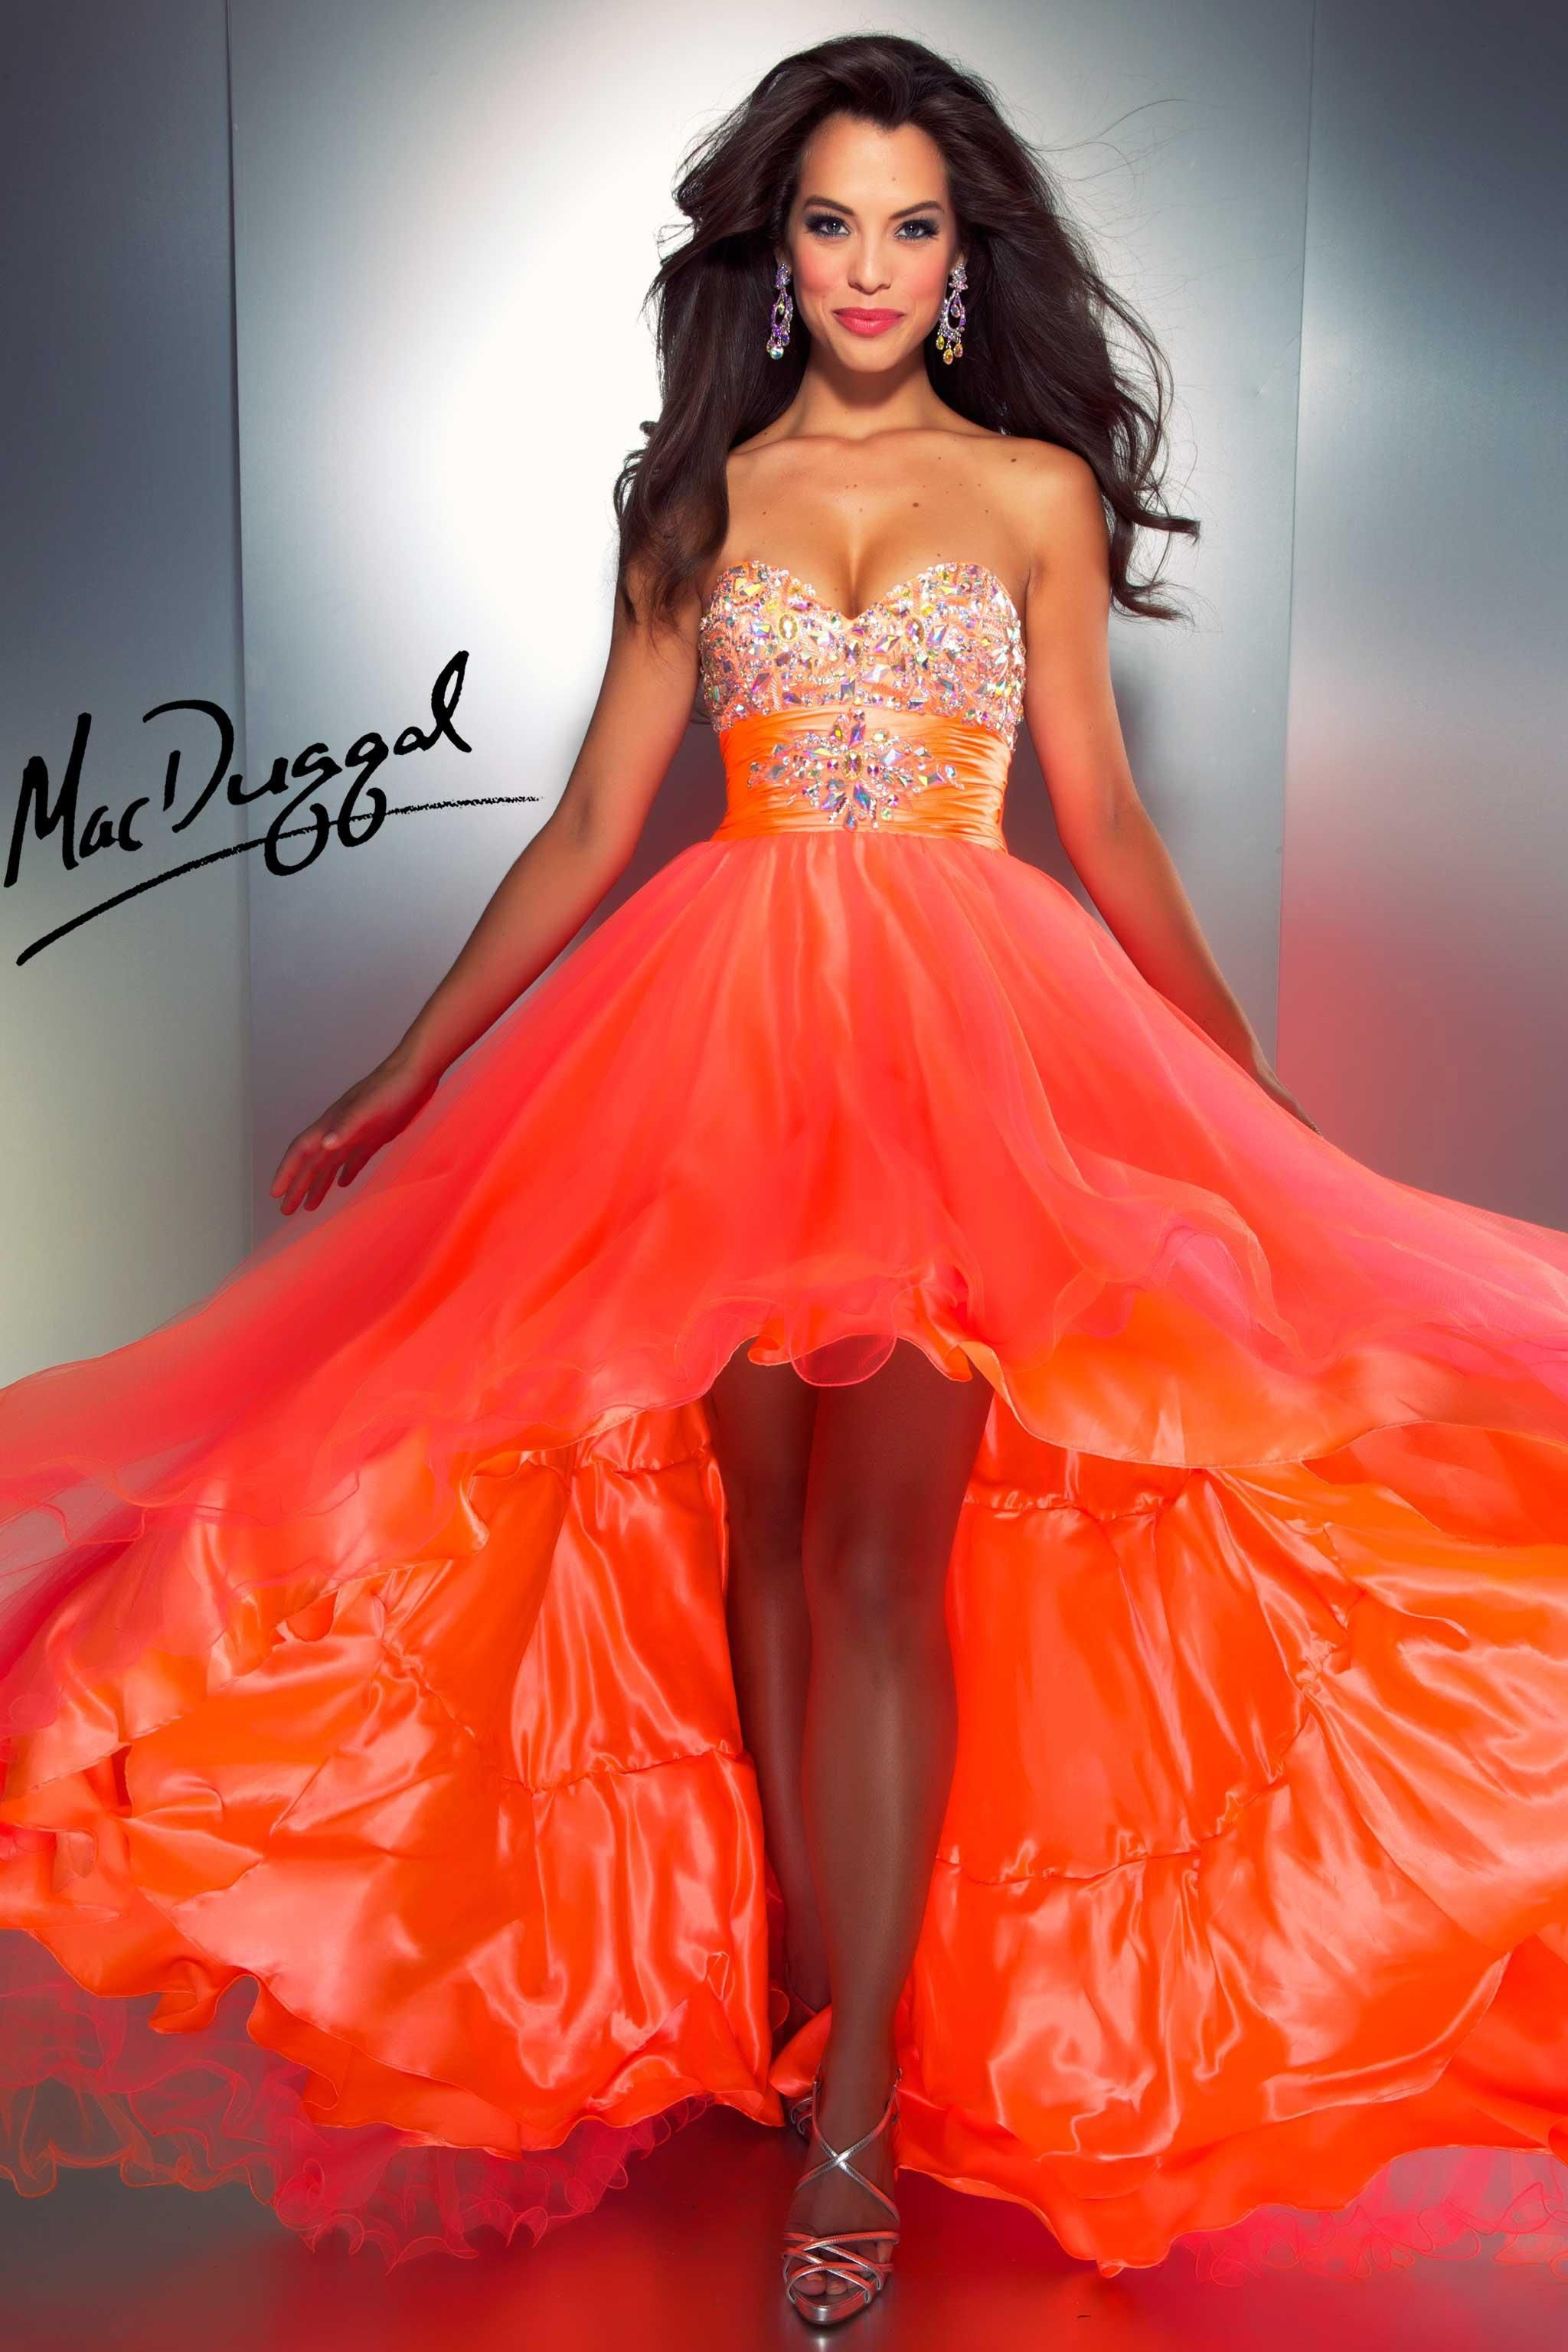 Which Prom Dress Are You Most Likely To Wear? | Gowns, Retail and ...